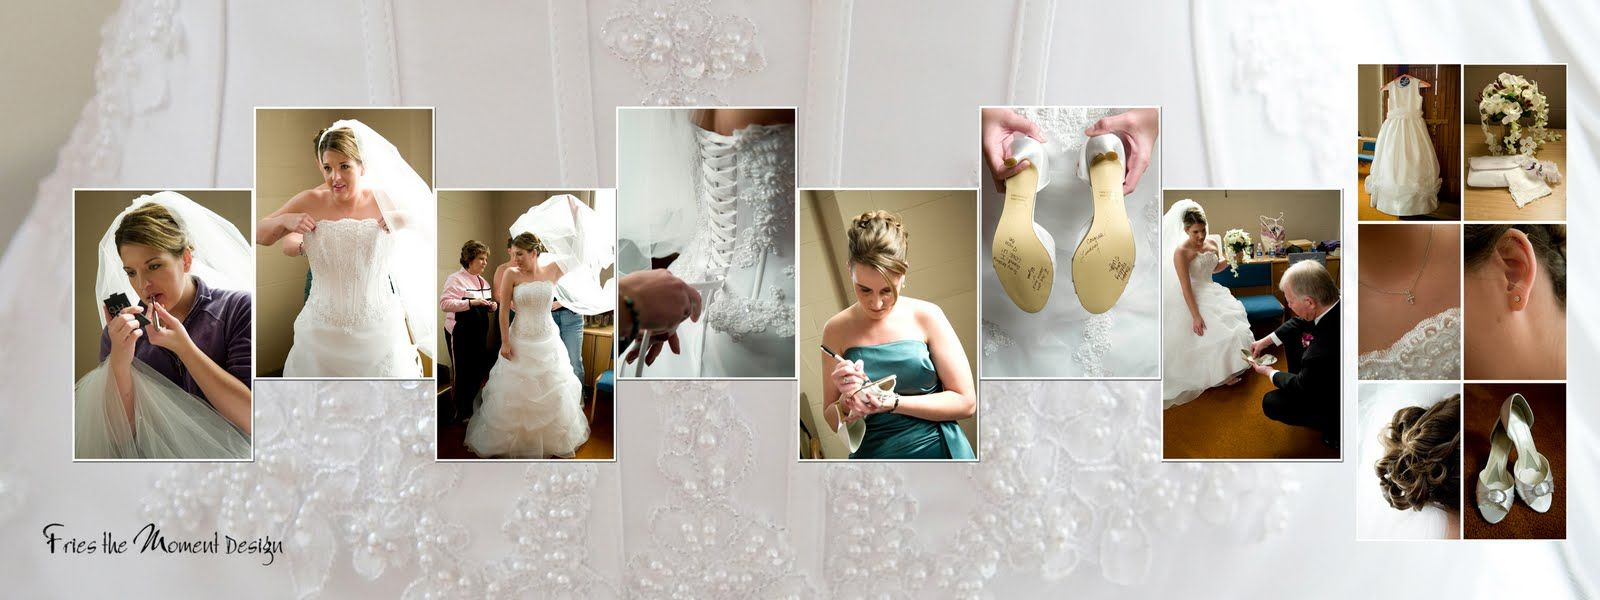 Using the dress as a background | Wedding Album | Pinterest ...